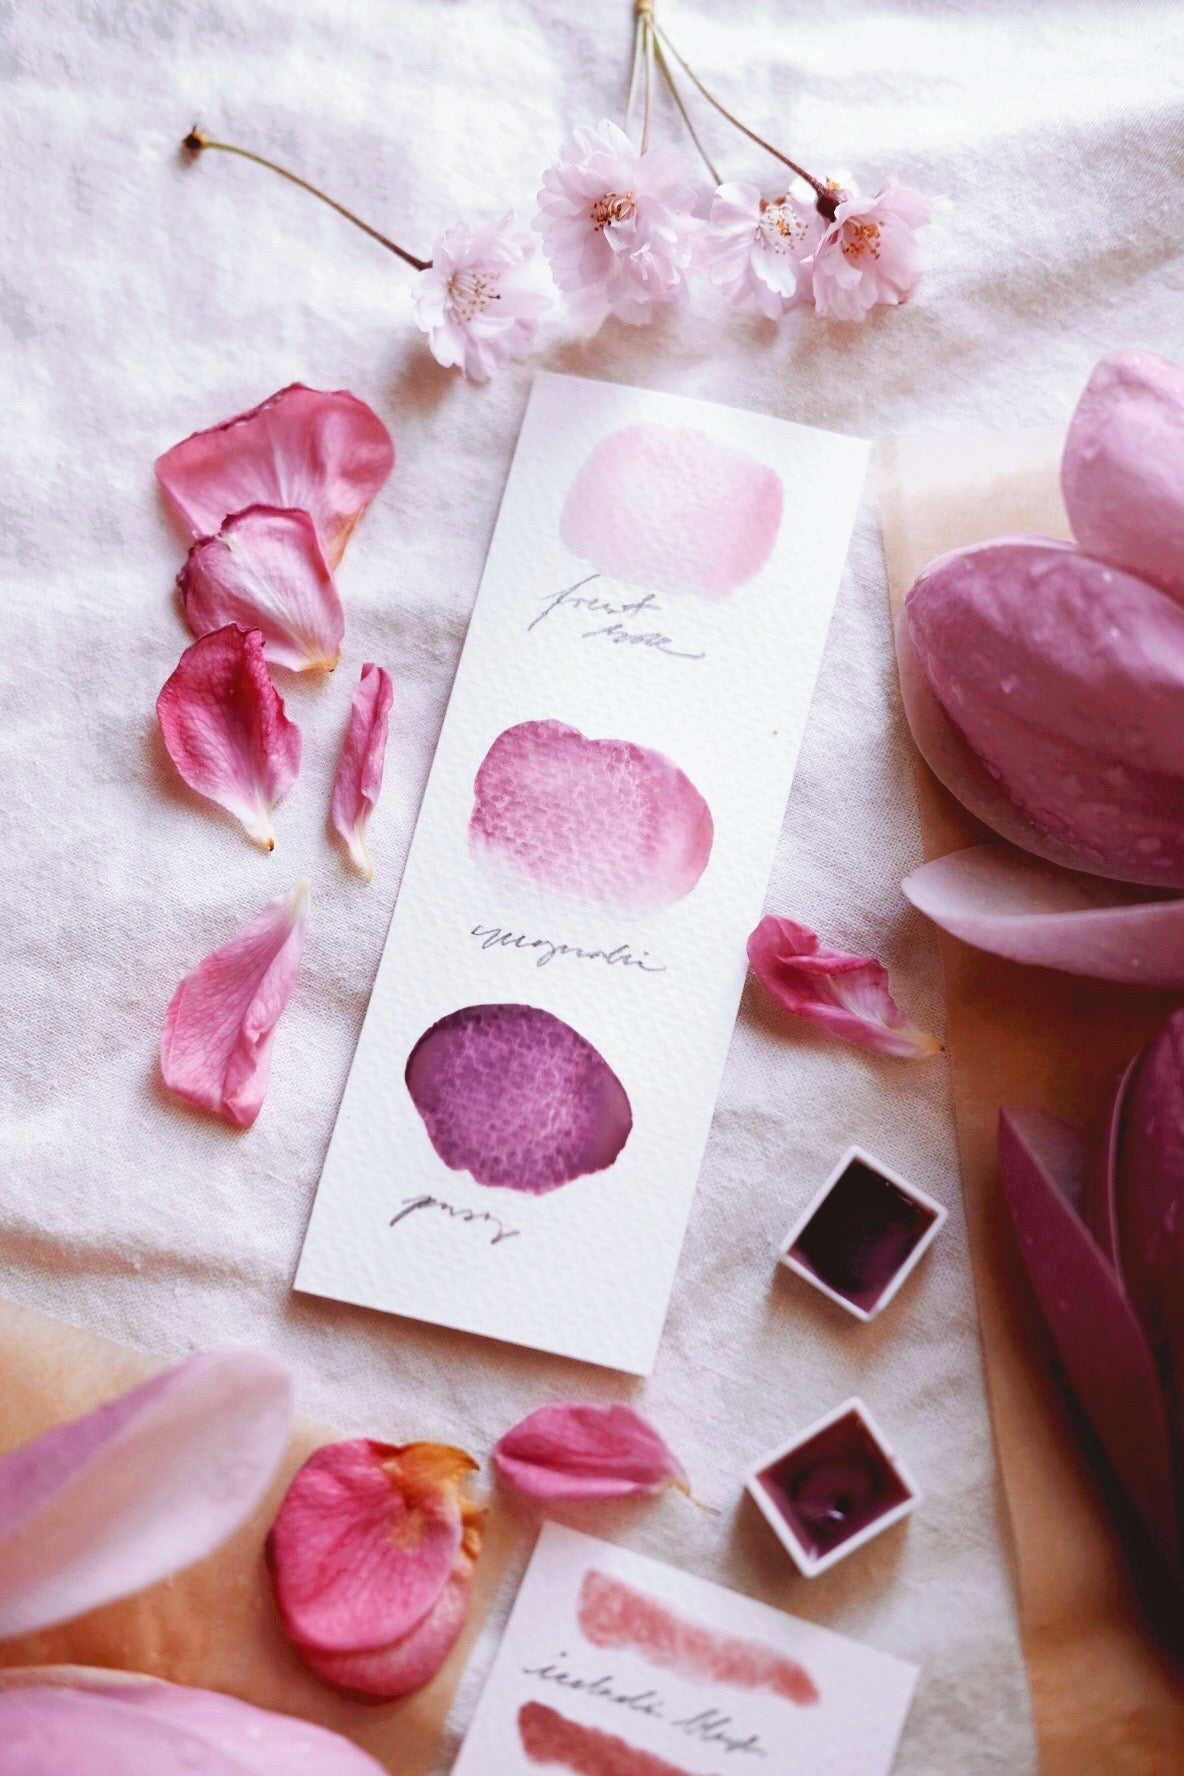 RESERVE for Julie + Pink Blossom + Limited edition gemstone watercolor palette